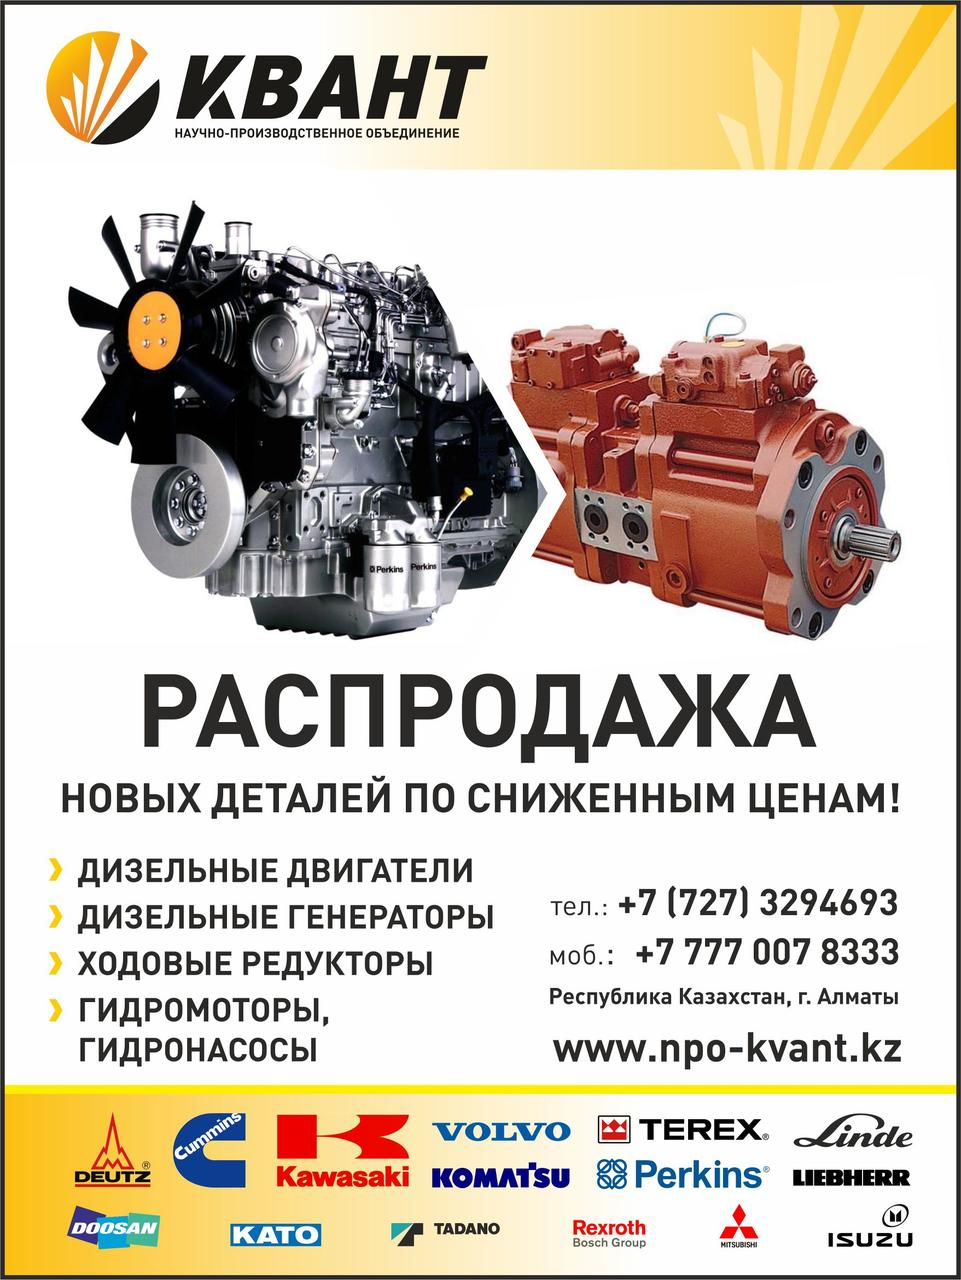 Двигатель Iveco F2BE0642A*A002, Iveco F2BE0642A*A003, Iveco F2BE0642B*A001, Iveco F2CE, Iveco F2CE9687A